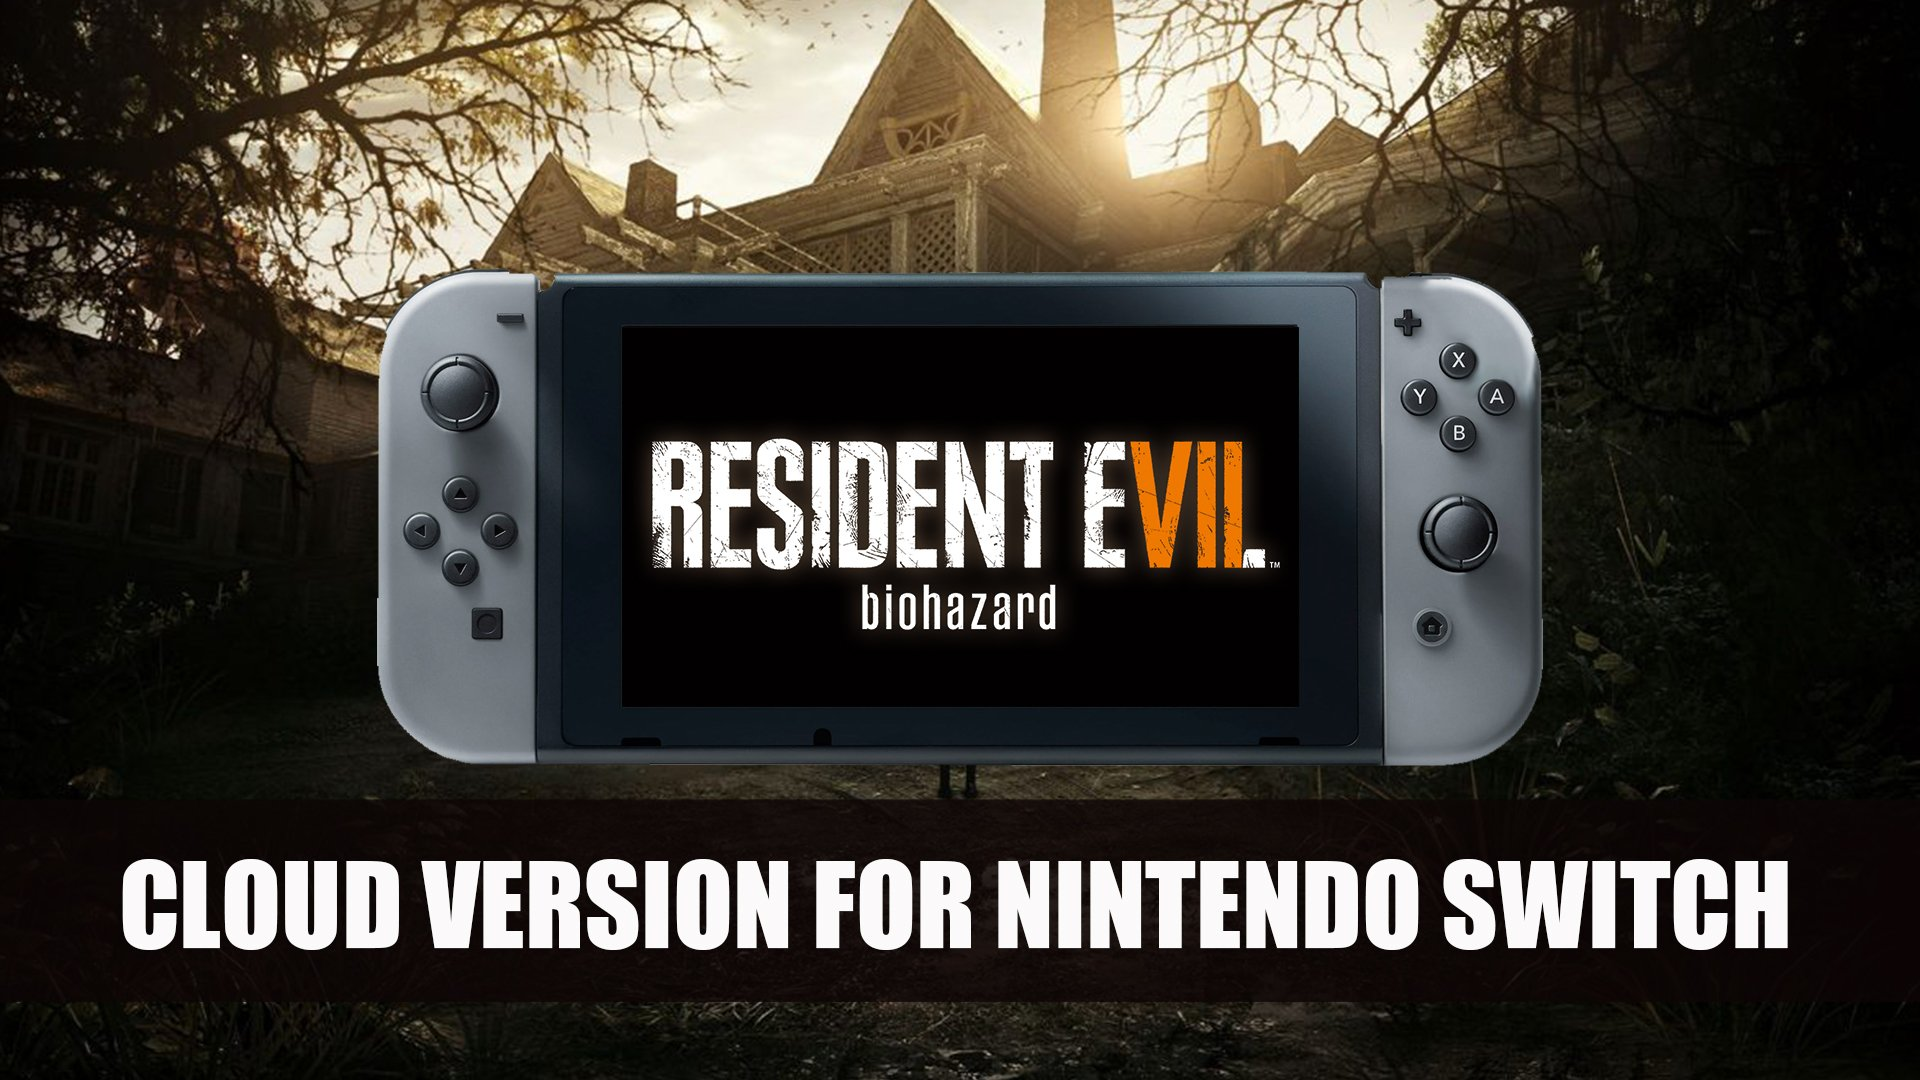 Resident Evil 7 Cloud Version For Nintendo Switch Announced Fextralife